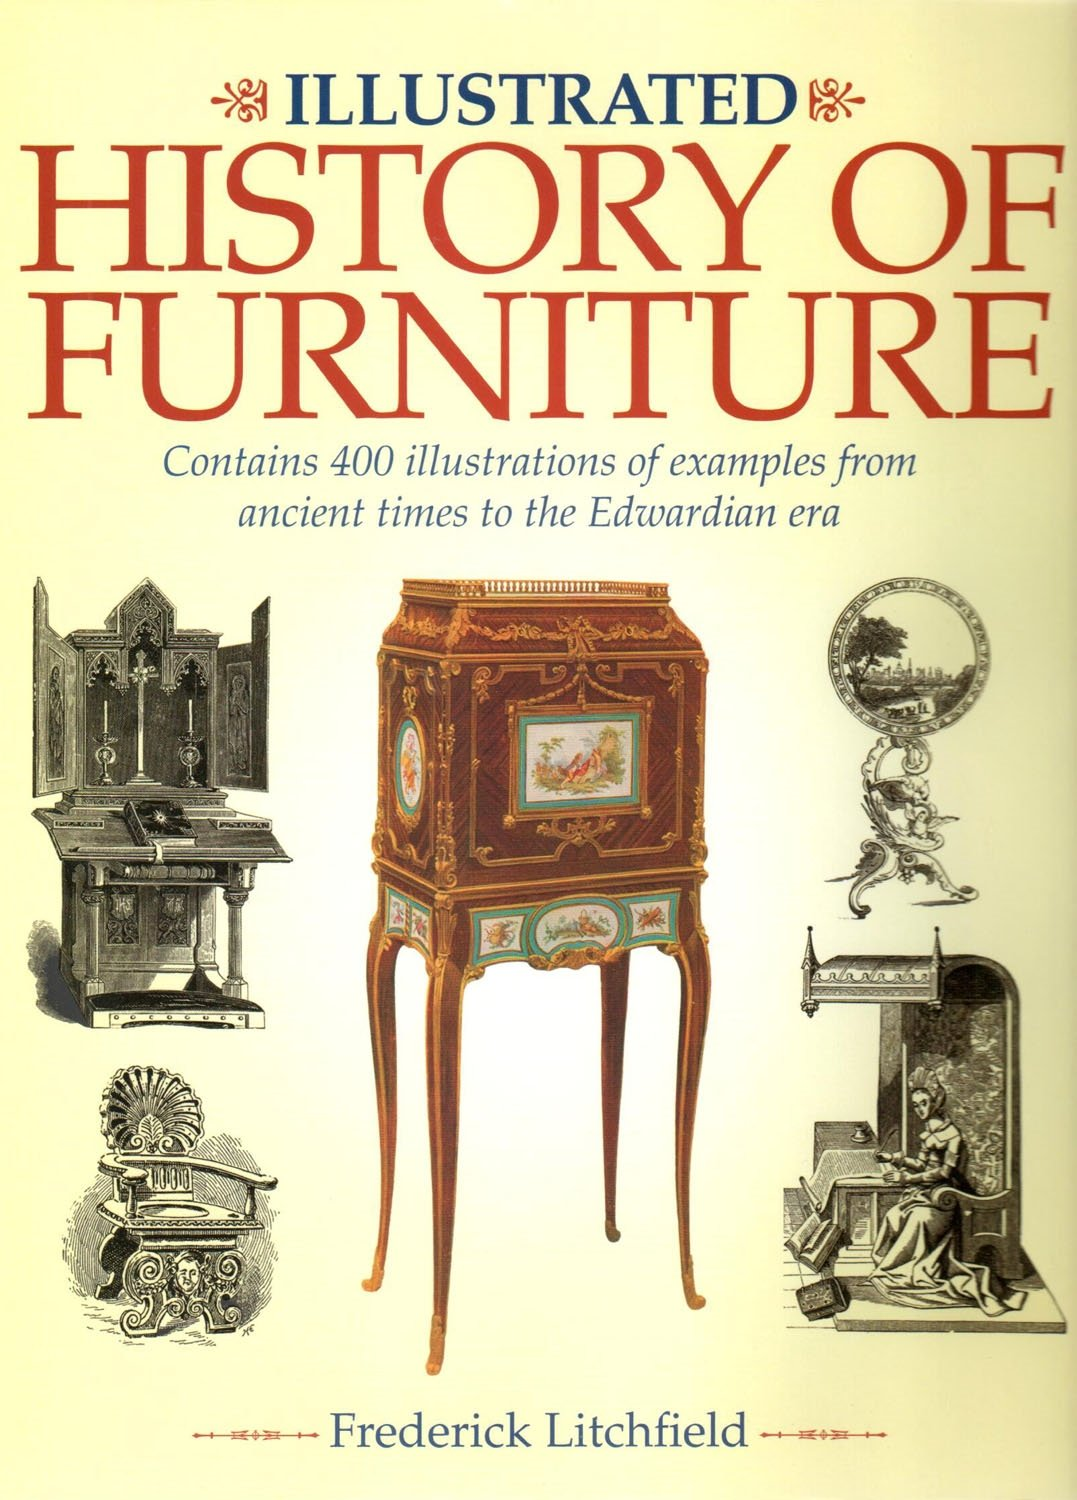 Illustrated History of Furniture: Contains 400 Illustrations of Examples from Ancient Times to the Edwardian Era